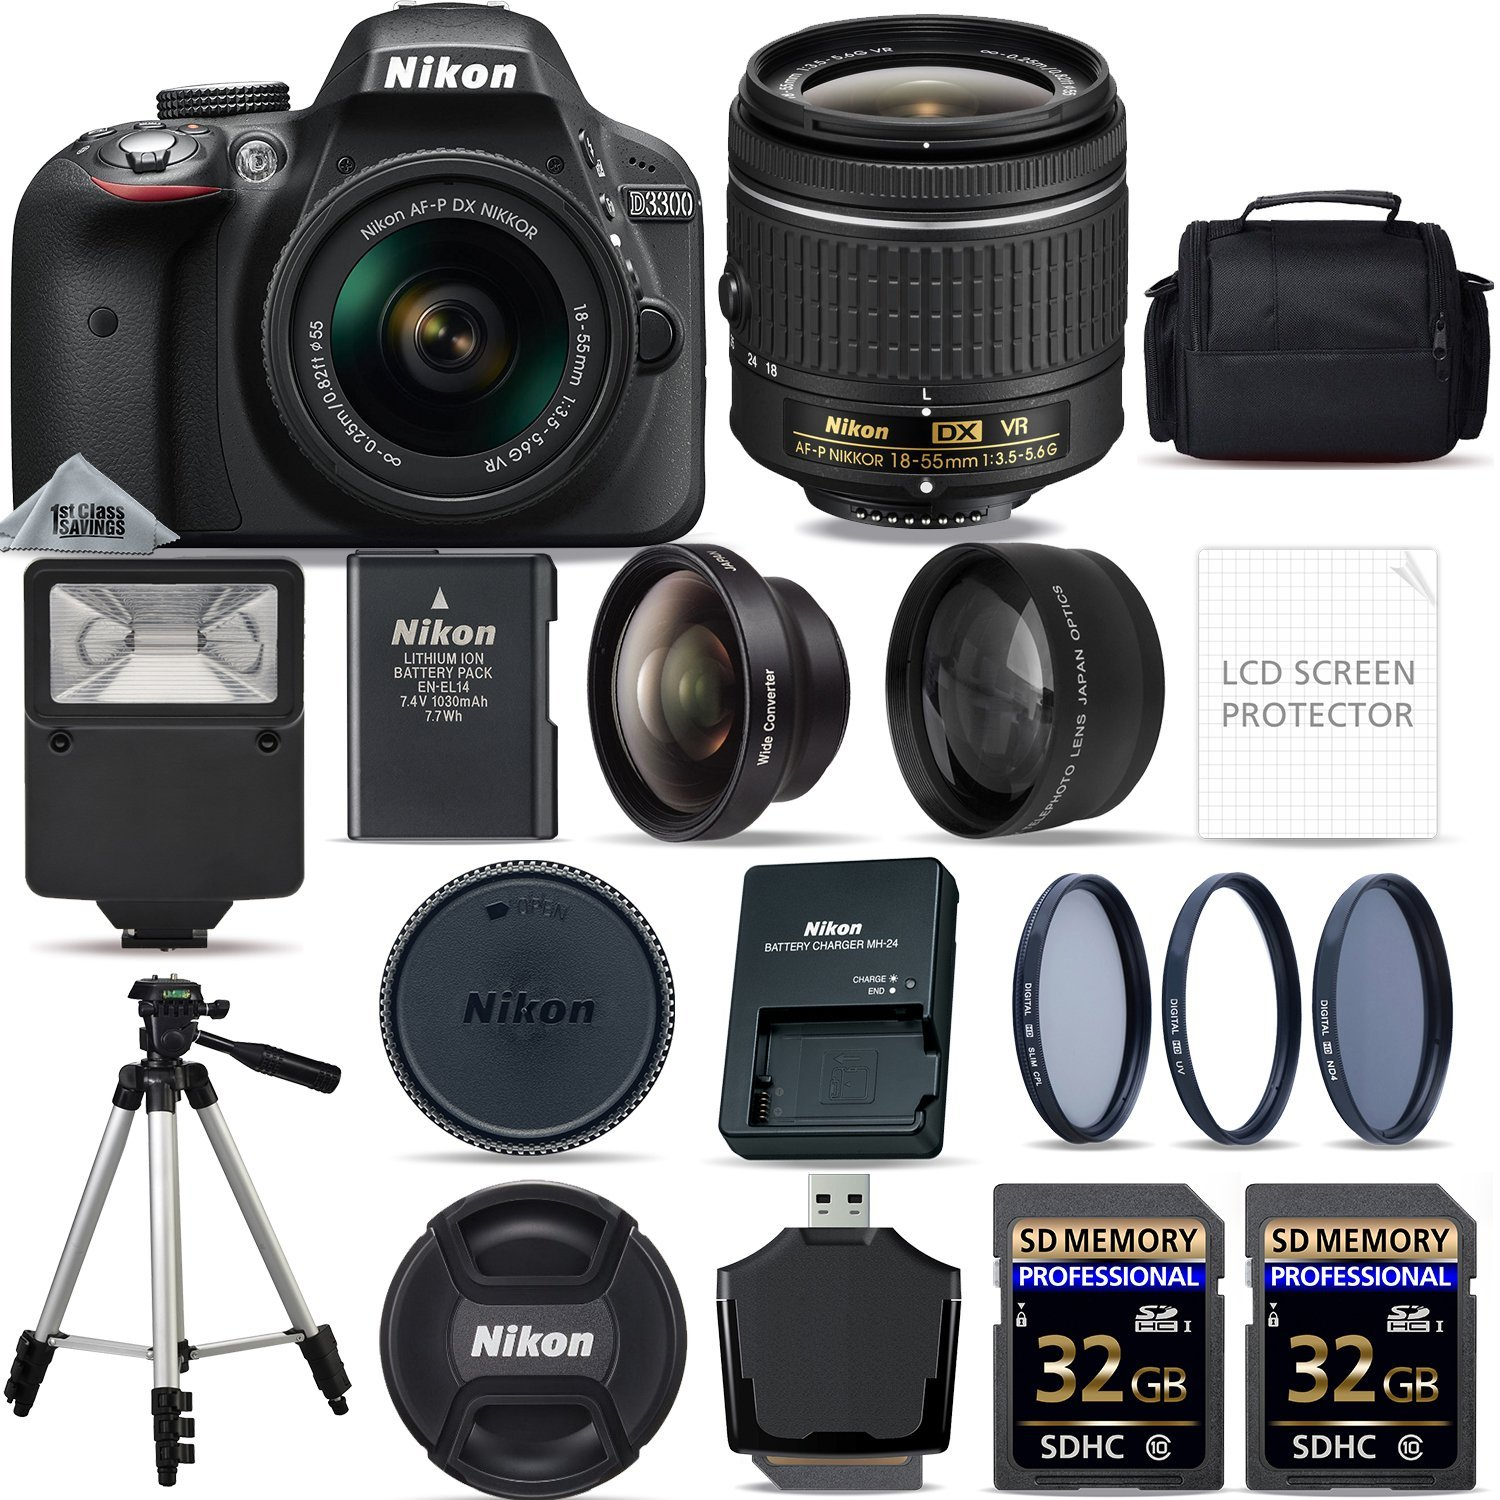 Nikon D3300 DSLR Camera + 18-55mm VR Lens + 64GB STORAGE ...